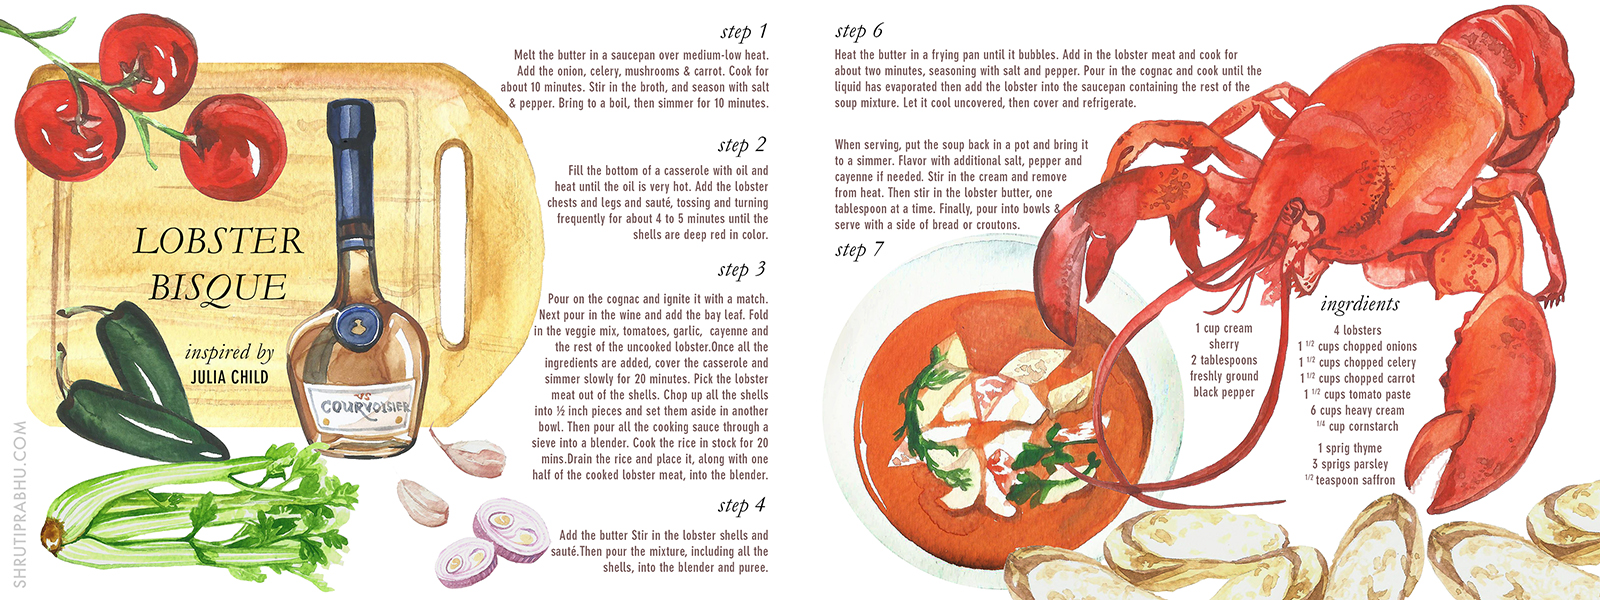 Illustrated Recipes | Lobster Bisque